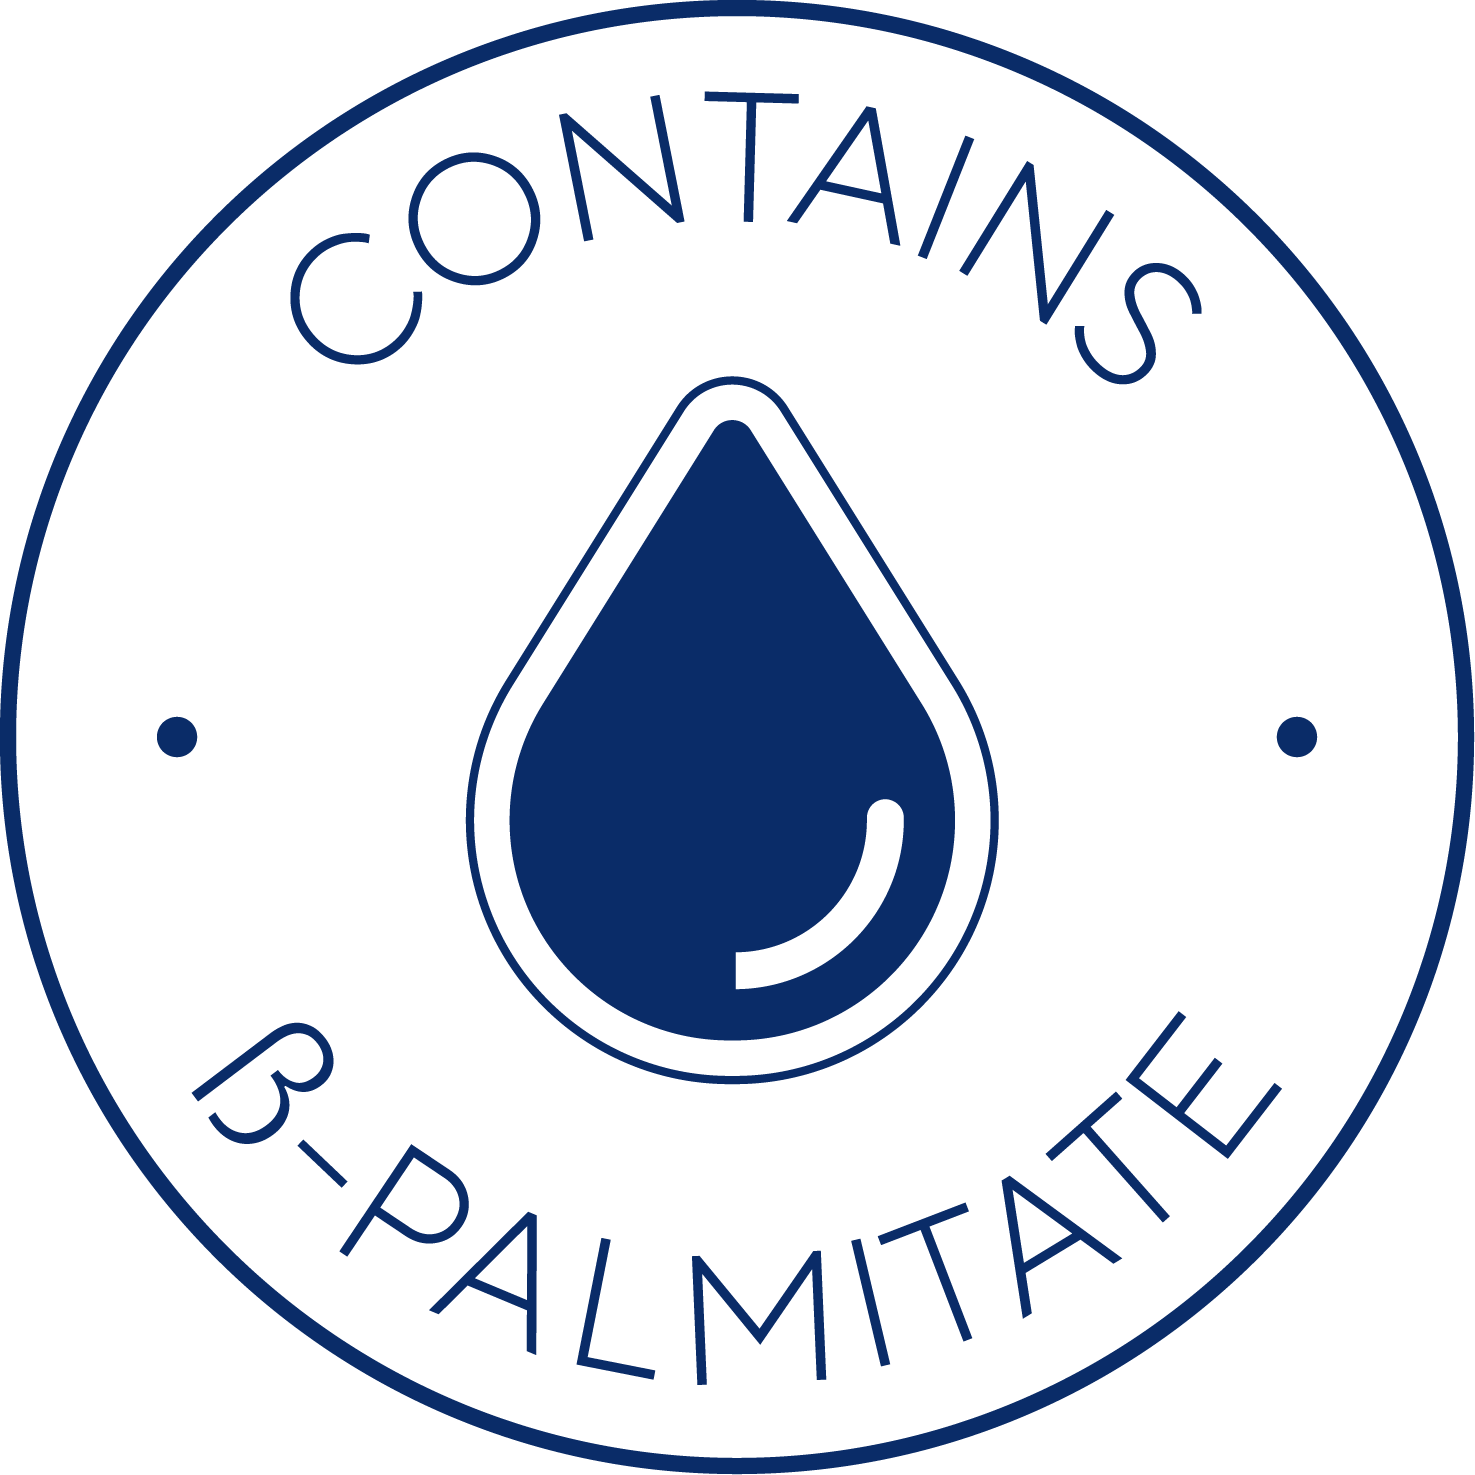 Contains B-palmitate